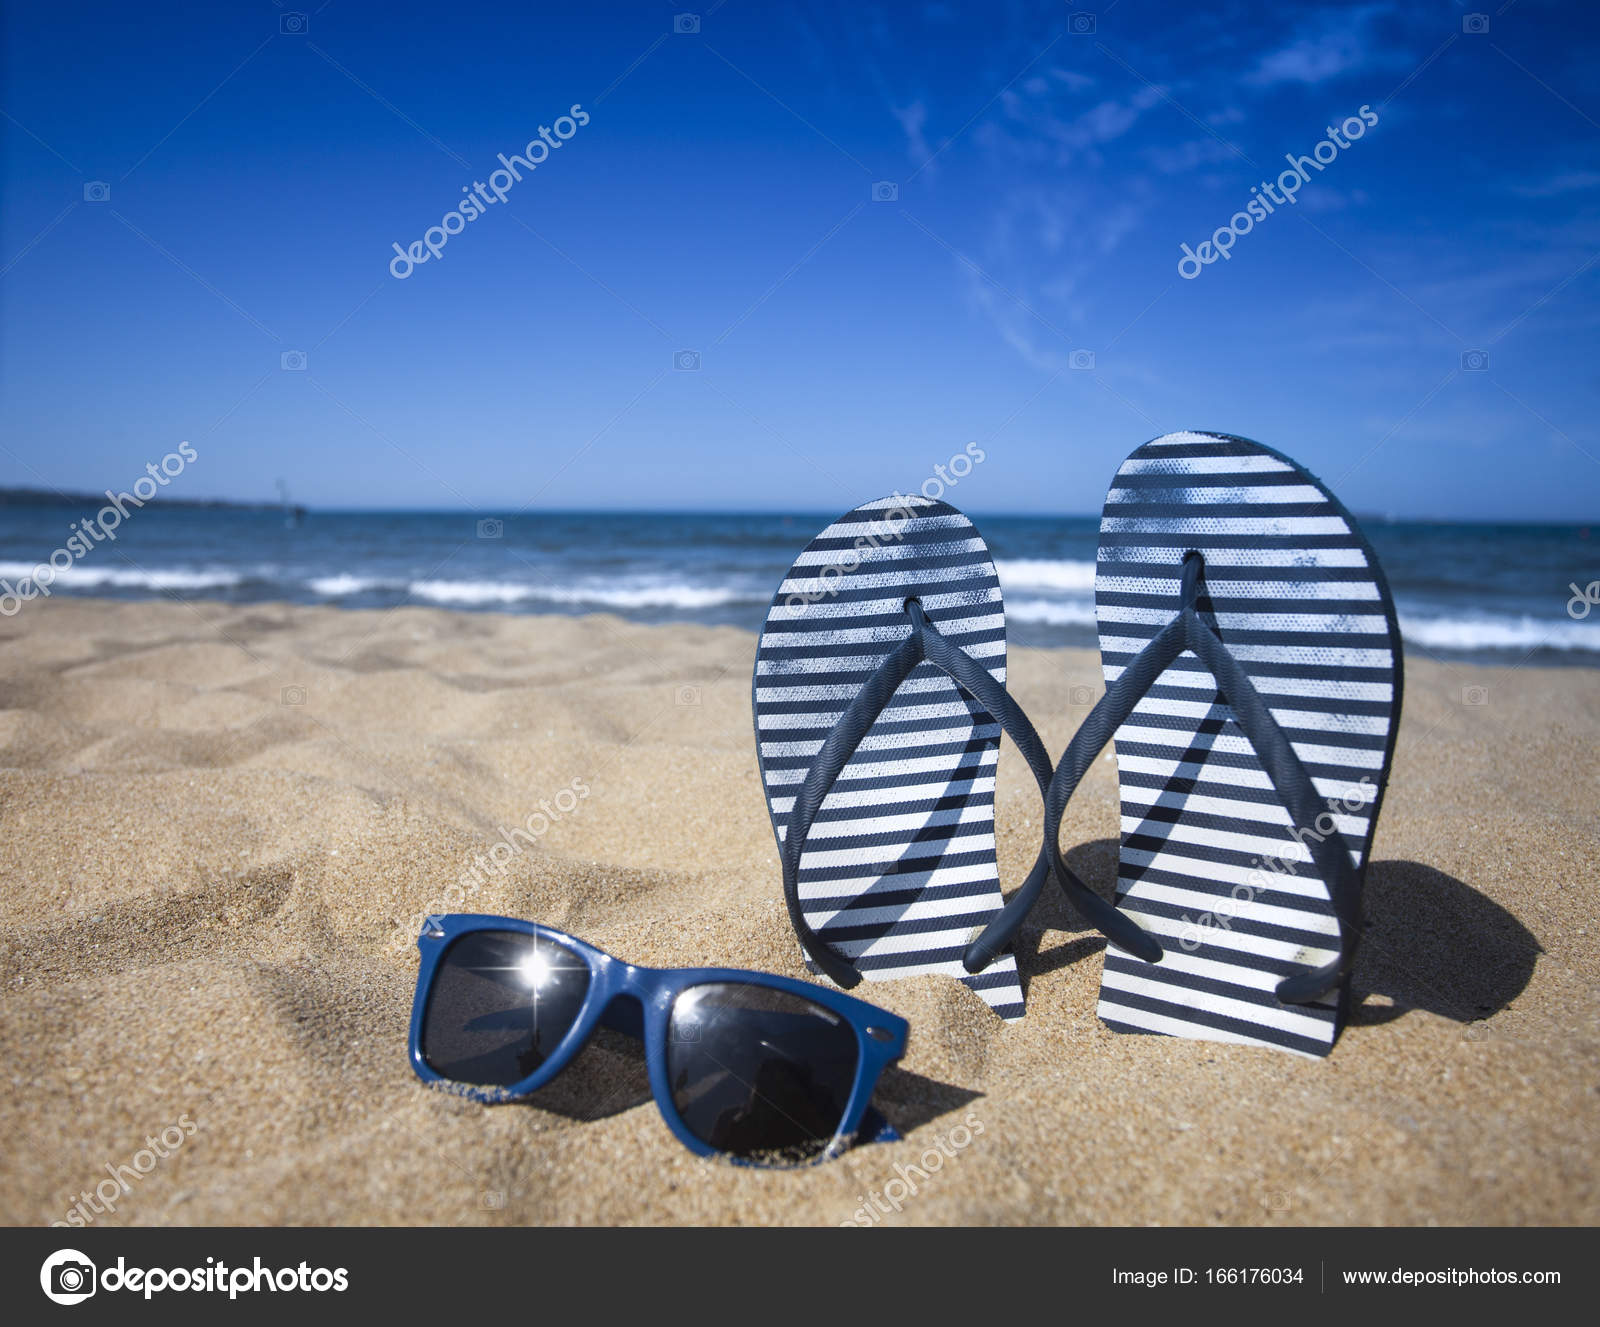 f0f23315cdff1 Blue sandal flip flop and sunglasses on the sand beach with blue sea and  sky background in summer vacation. Copy space.